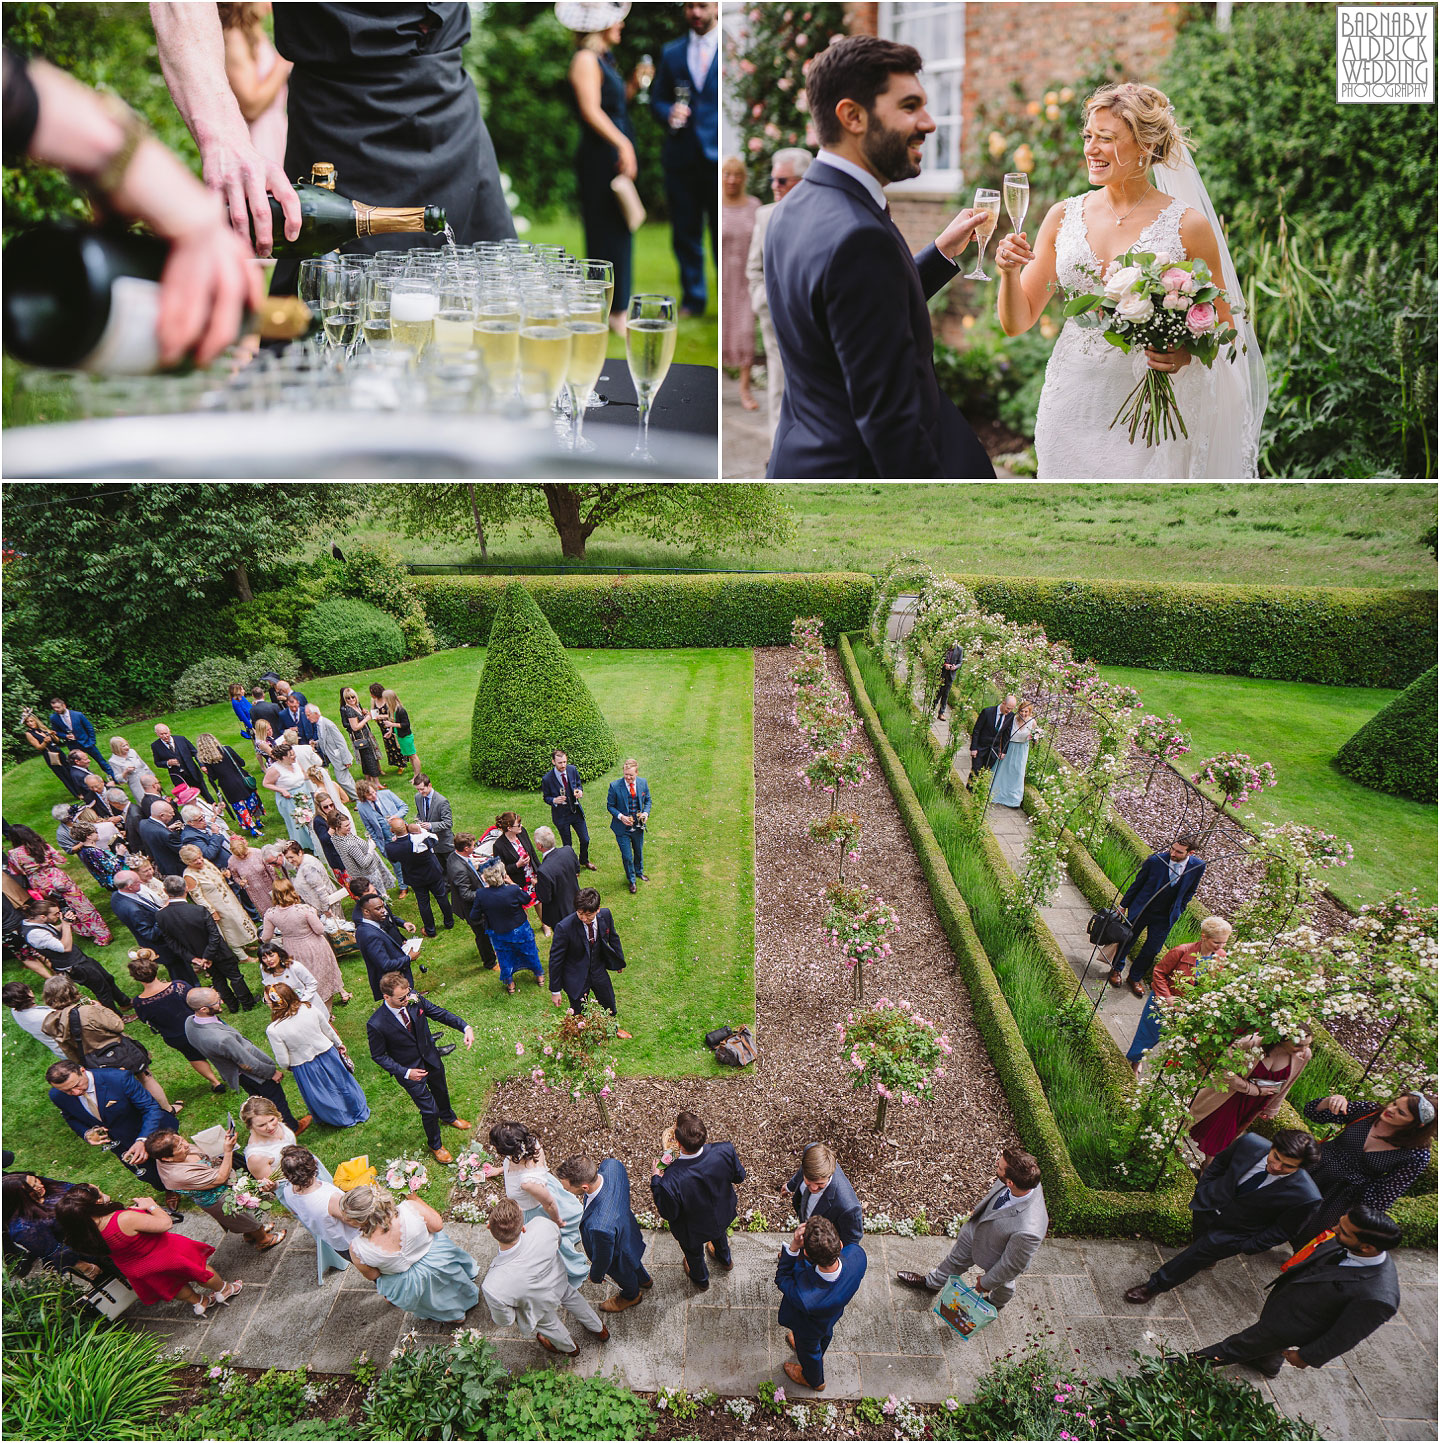 Photos of a Papakata Sperry Tent Garden Wedding, Garden Marquee Wedding, Papakata Sperry Tent Wedding, Sperry Tent Marquee Wedding, Yorkshire garden Marquee Wedding company